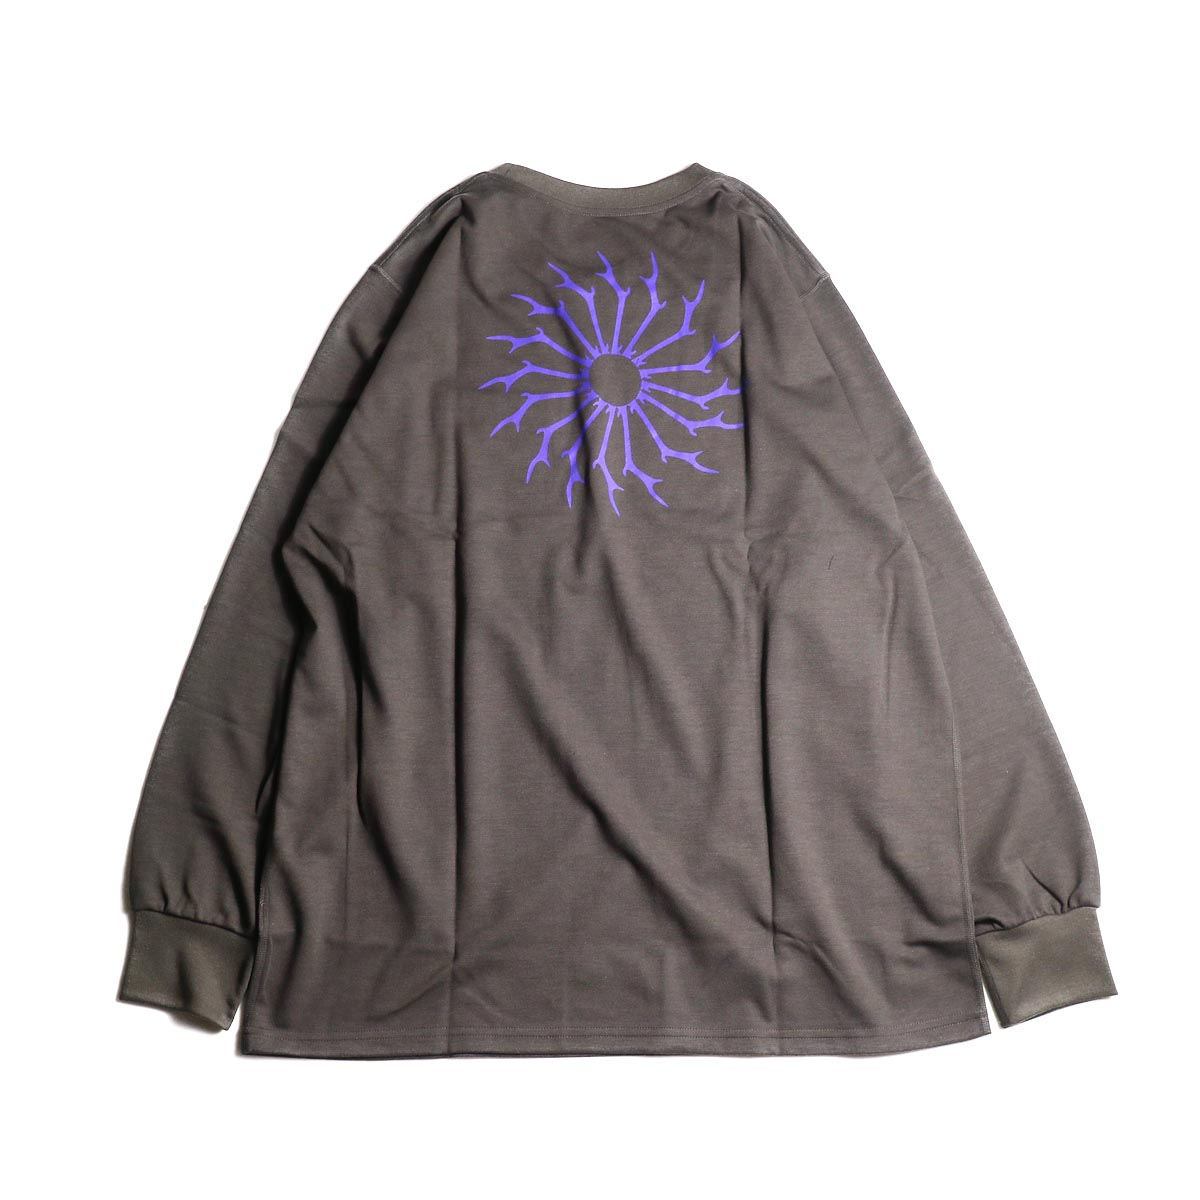 South2 West8 / L/S Round Pocket Tee -Circle Horn (Charcoal)